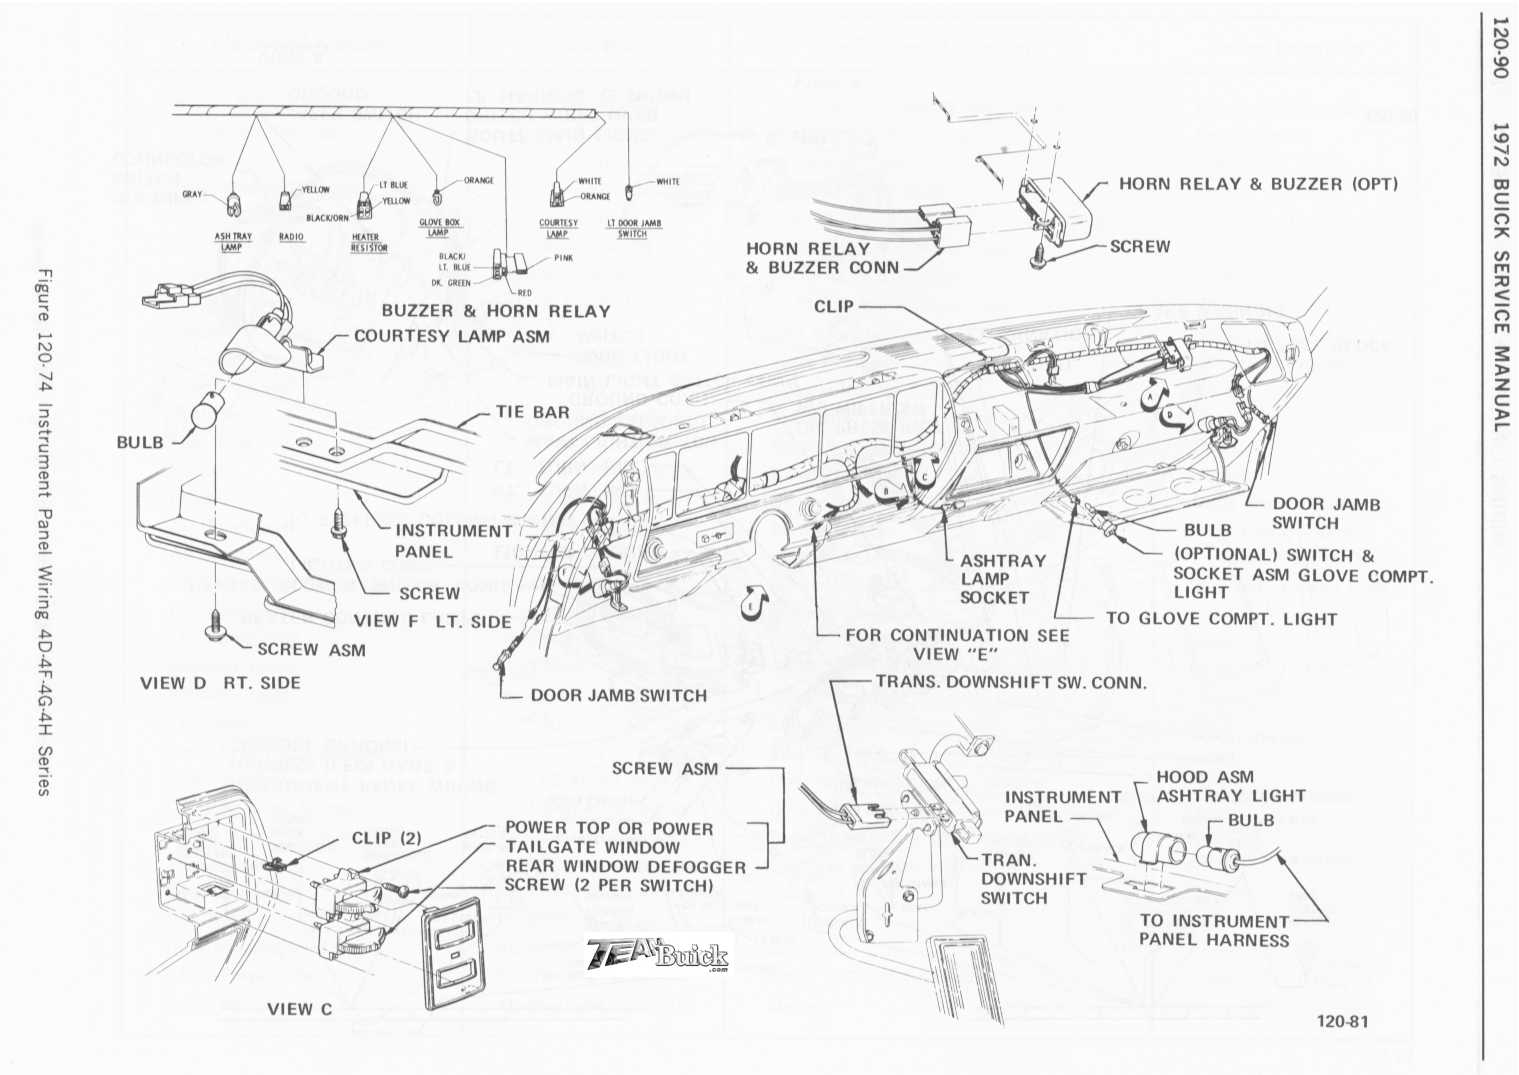 1972 chevelle radio wiring diagram bz 50 buick instrument panel 4d 4f 4g 4h series